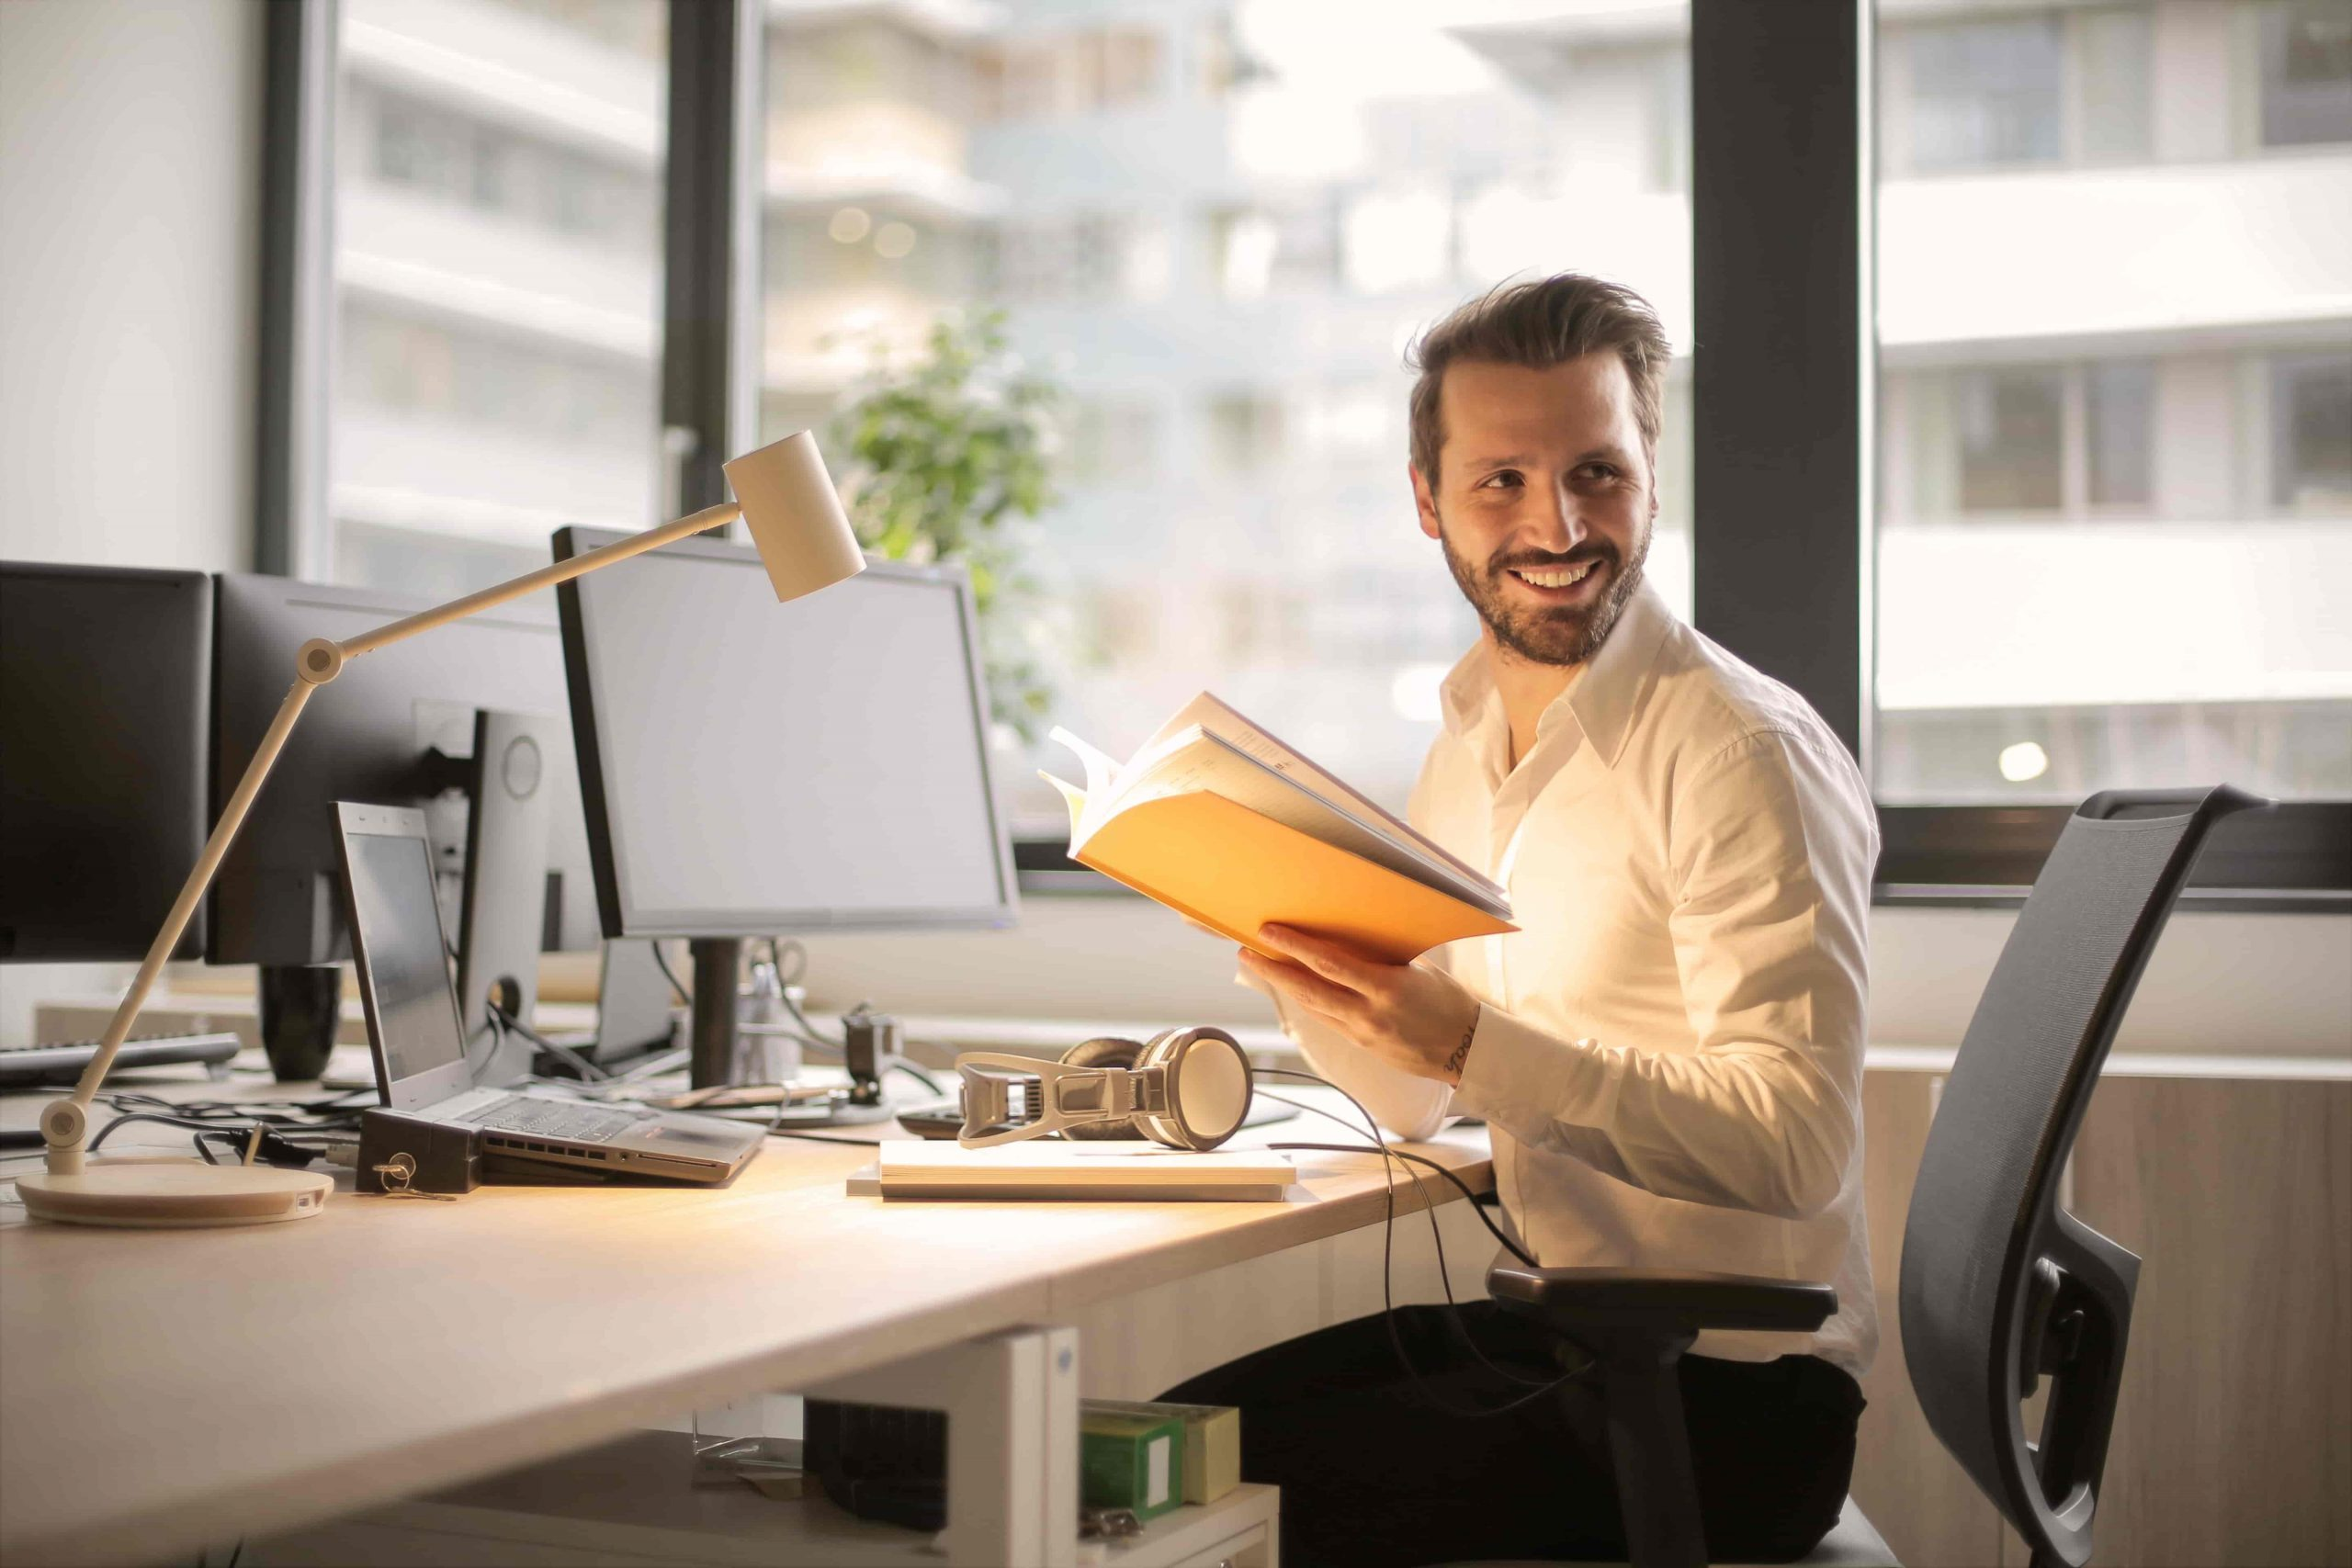 5 Things Every Administrative Assistant Should Know